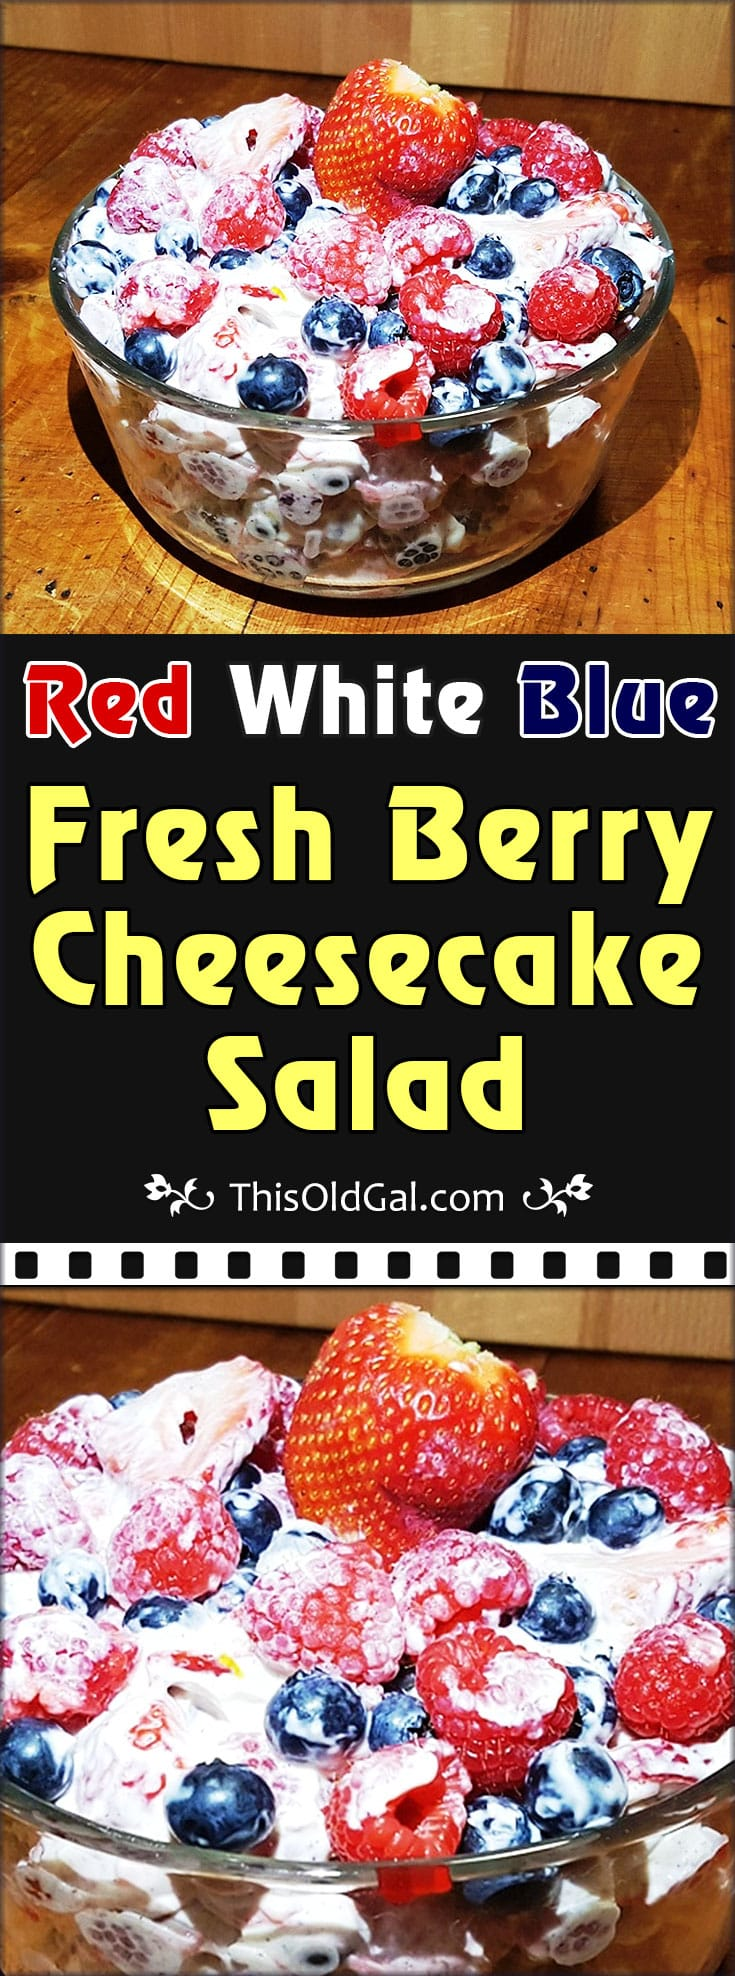 Red White Blue Fresh Berry Cheesecake Salad | This Old Gal